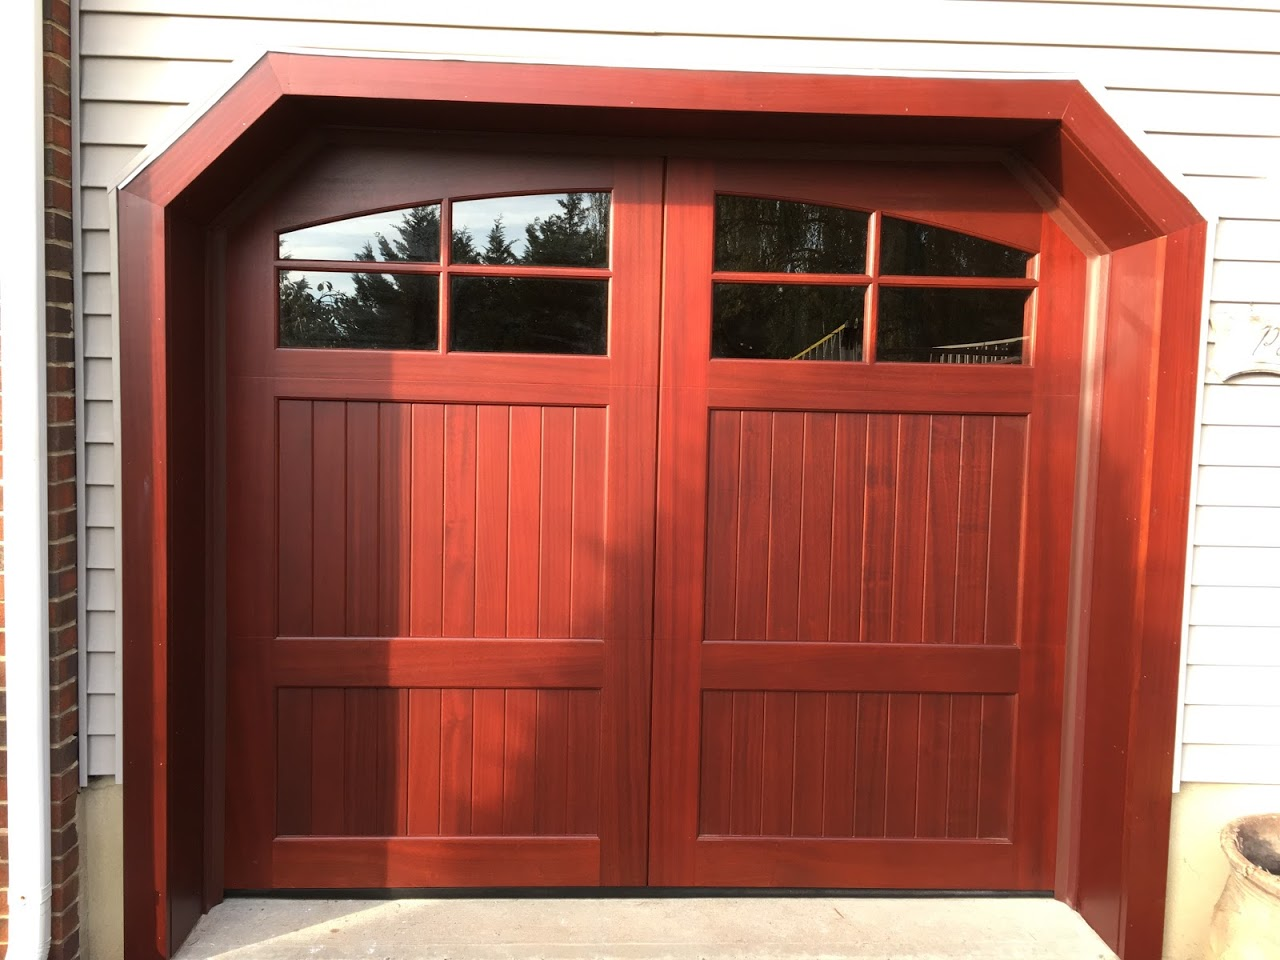 Your Garage Door Guide For Colonial Stye Homes Overhead Door Central Jersey  Service Photo 1